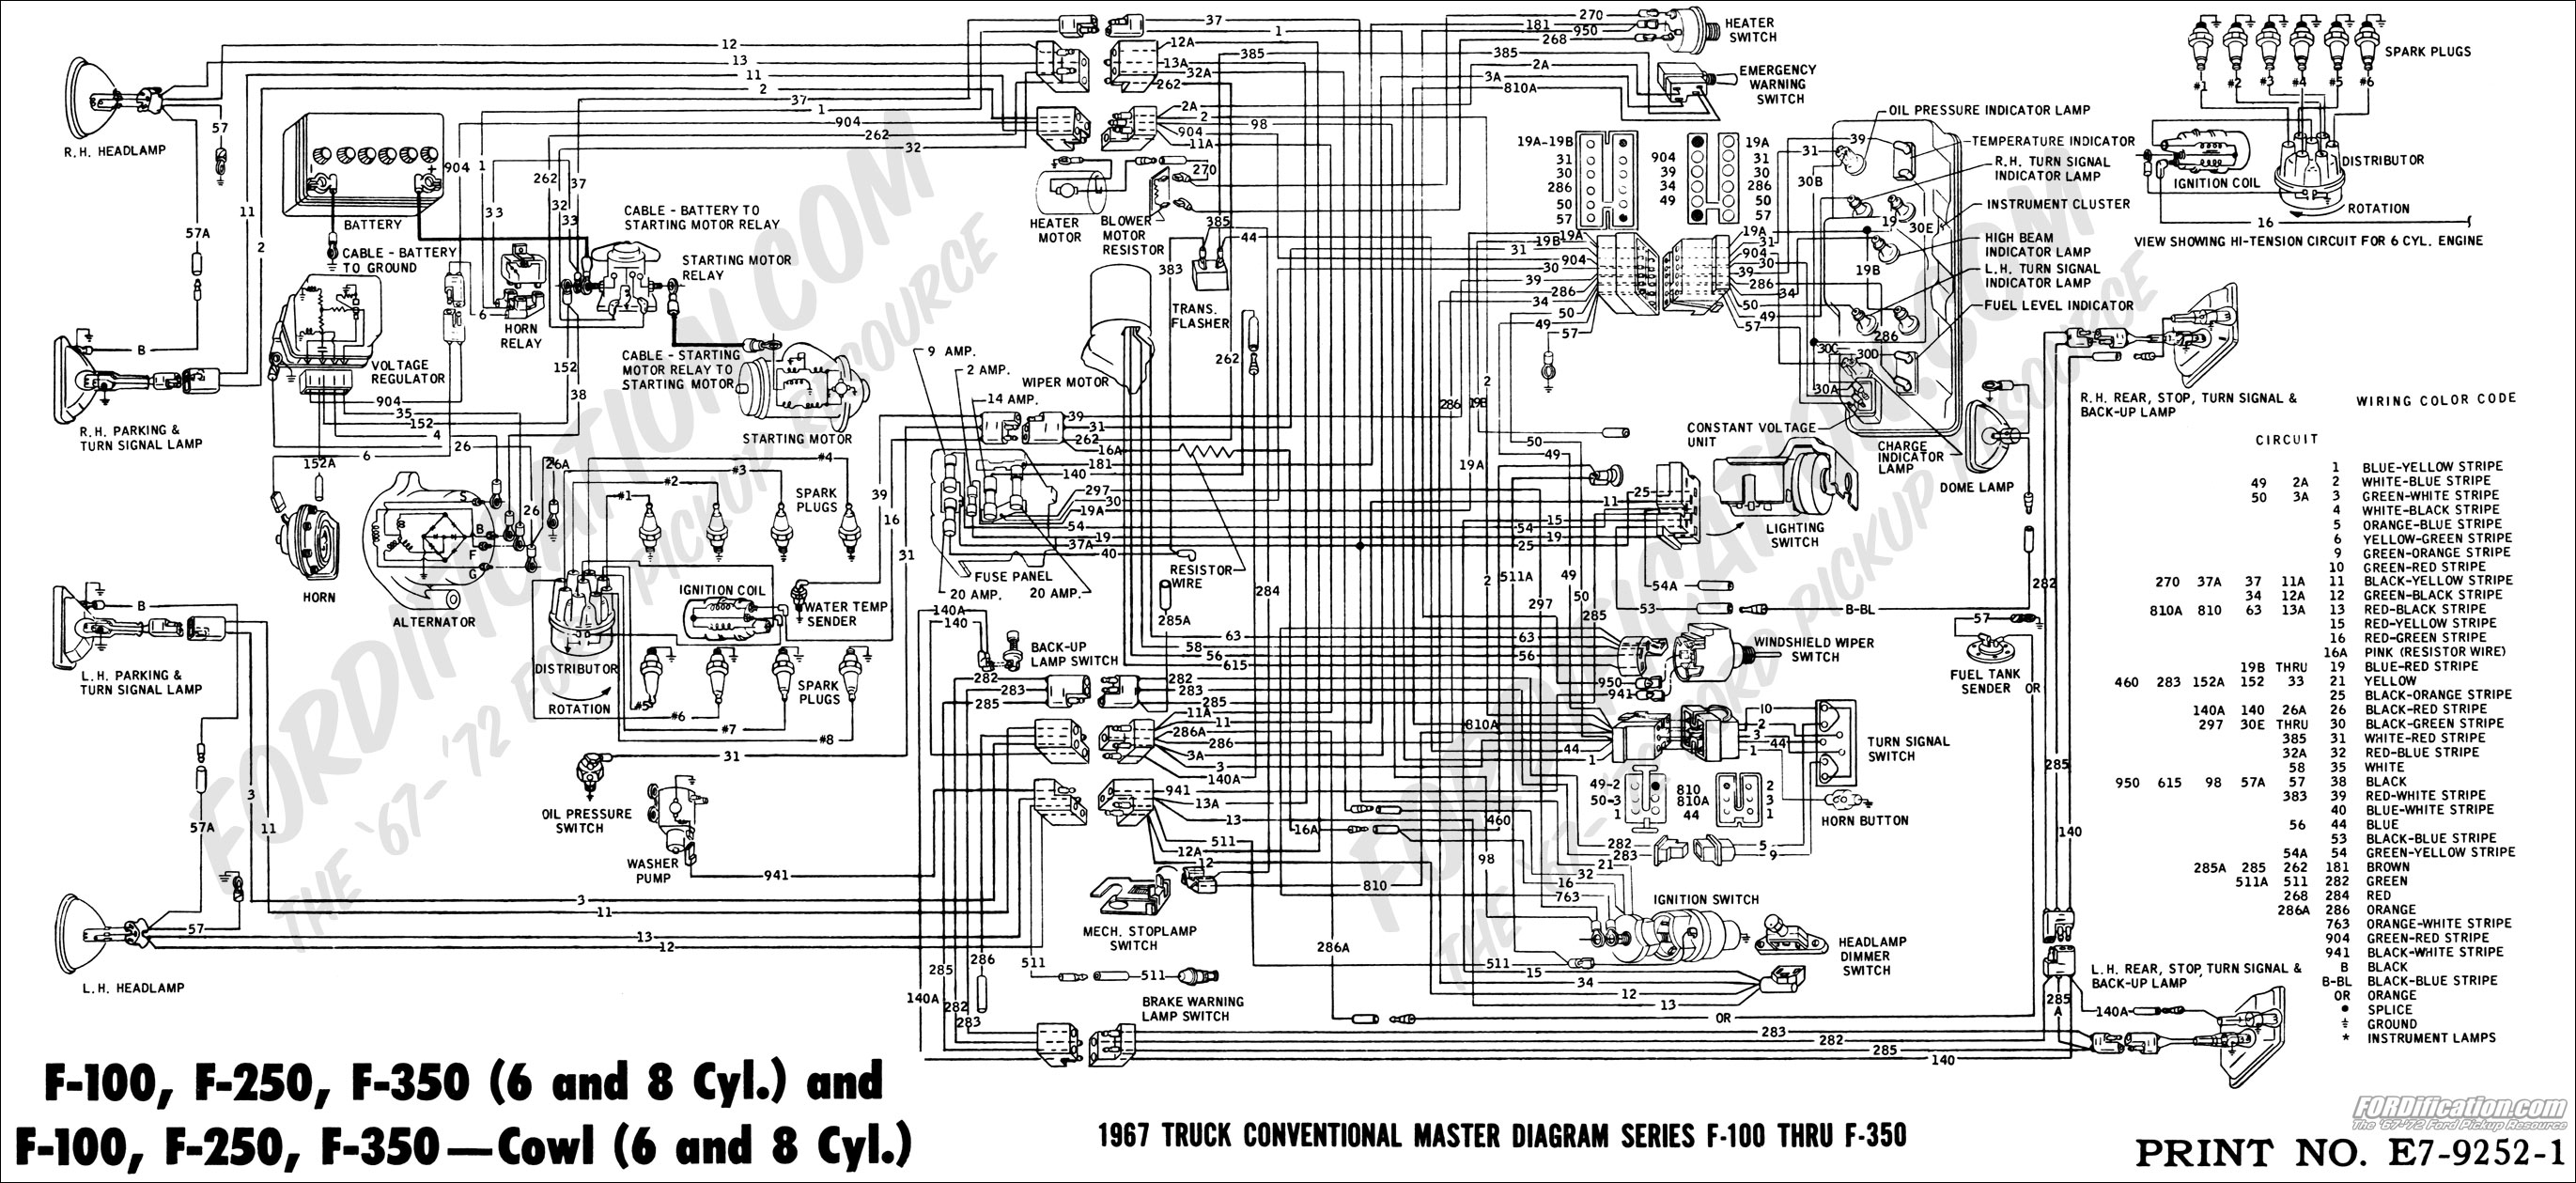 67masterdiagram ford truck technical drawings and schematics section h wiring ford wiring harness diagrams at soozxer.org